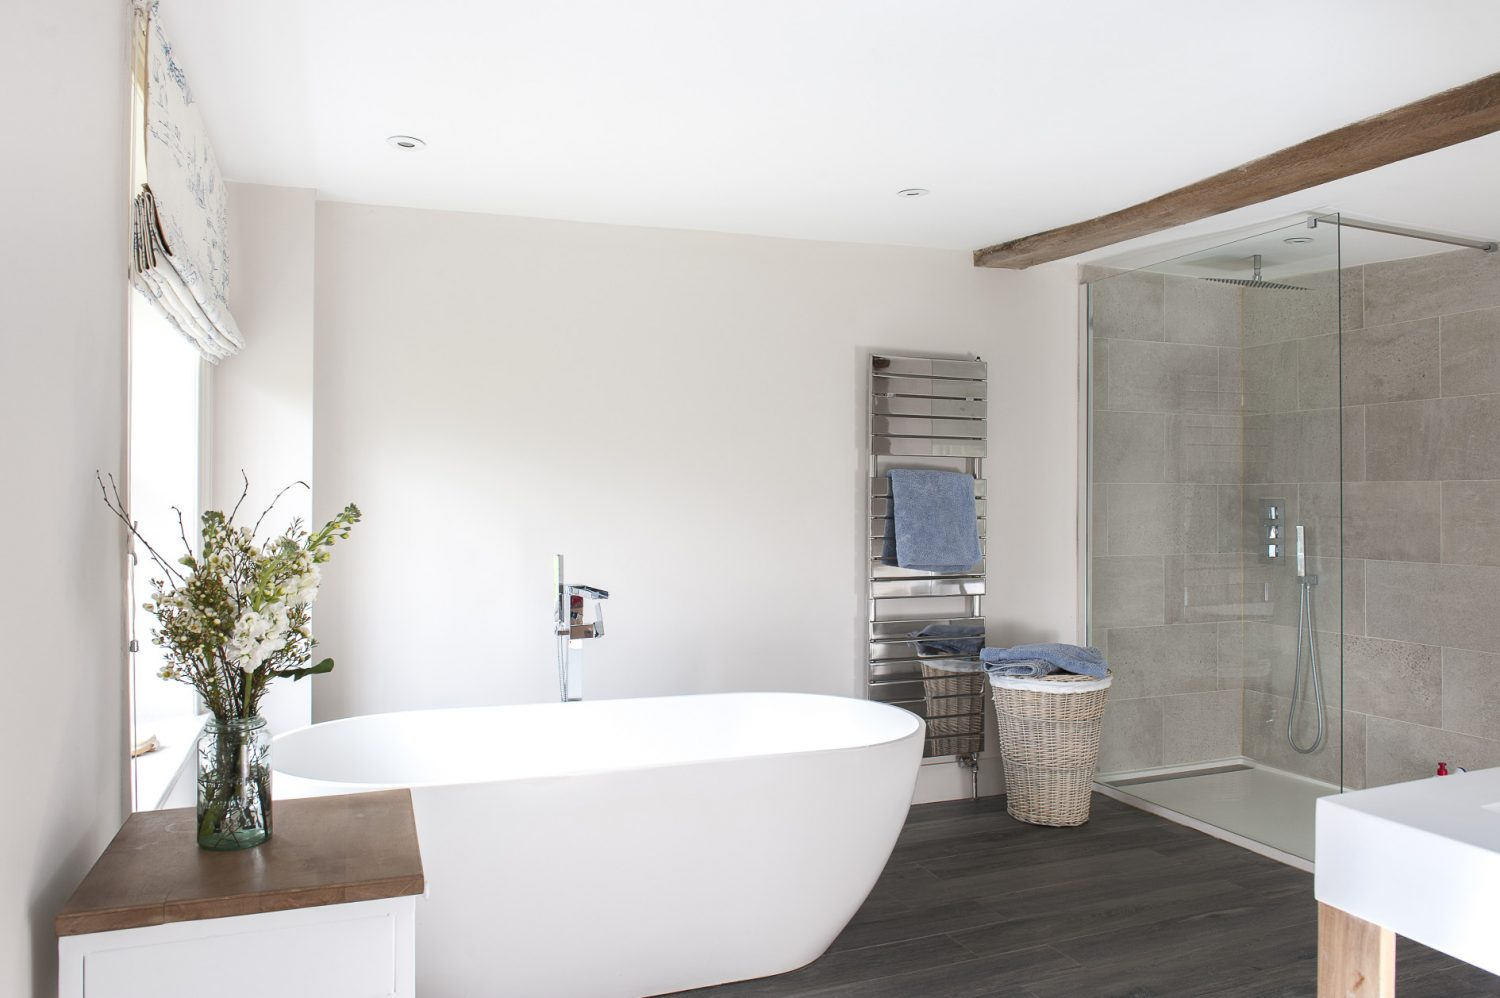 The contemporary en suite bathroom with modern standalone bath, spacious walk-in shower and limed oak flooring is a far cry from what the couple discovered when they bought the house which 'wasn't a wreck but needed a lot of updating'. Bathers get an uninterrupted view over the front garden